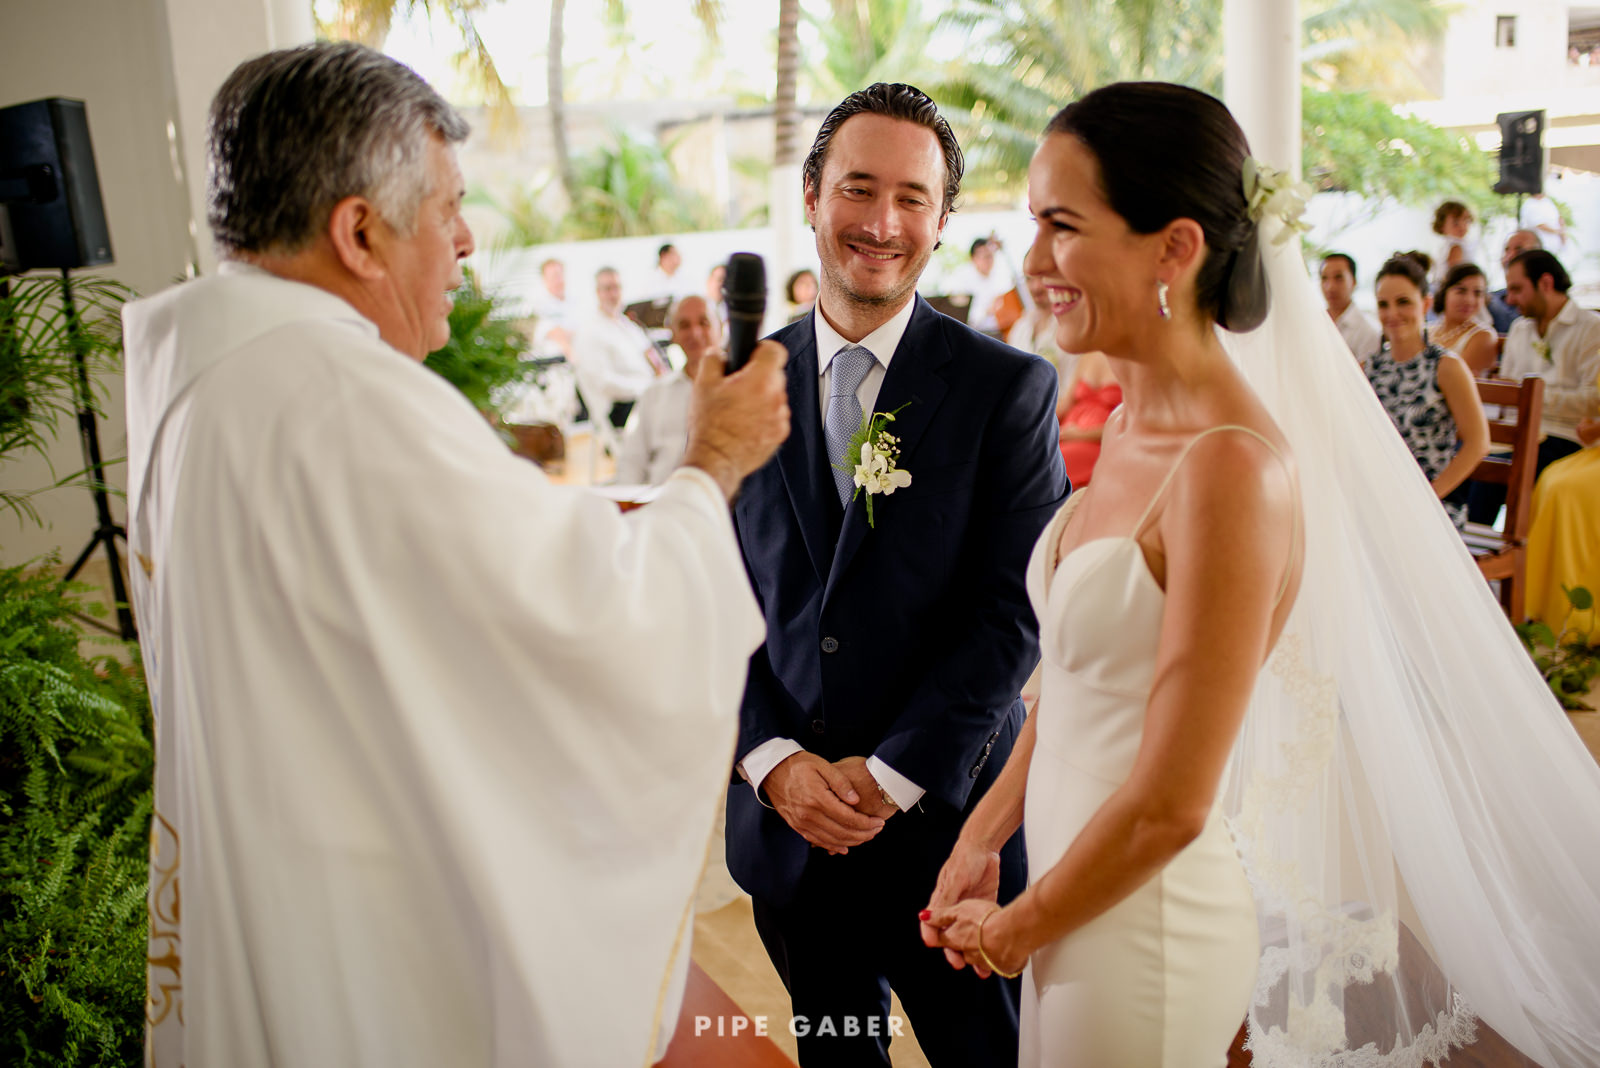 Wedding_phographer_Yucatan_beach_14.JPG